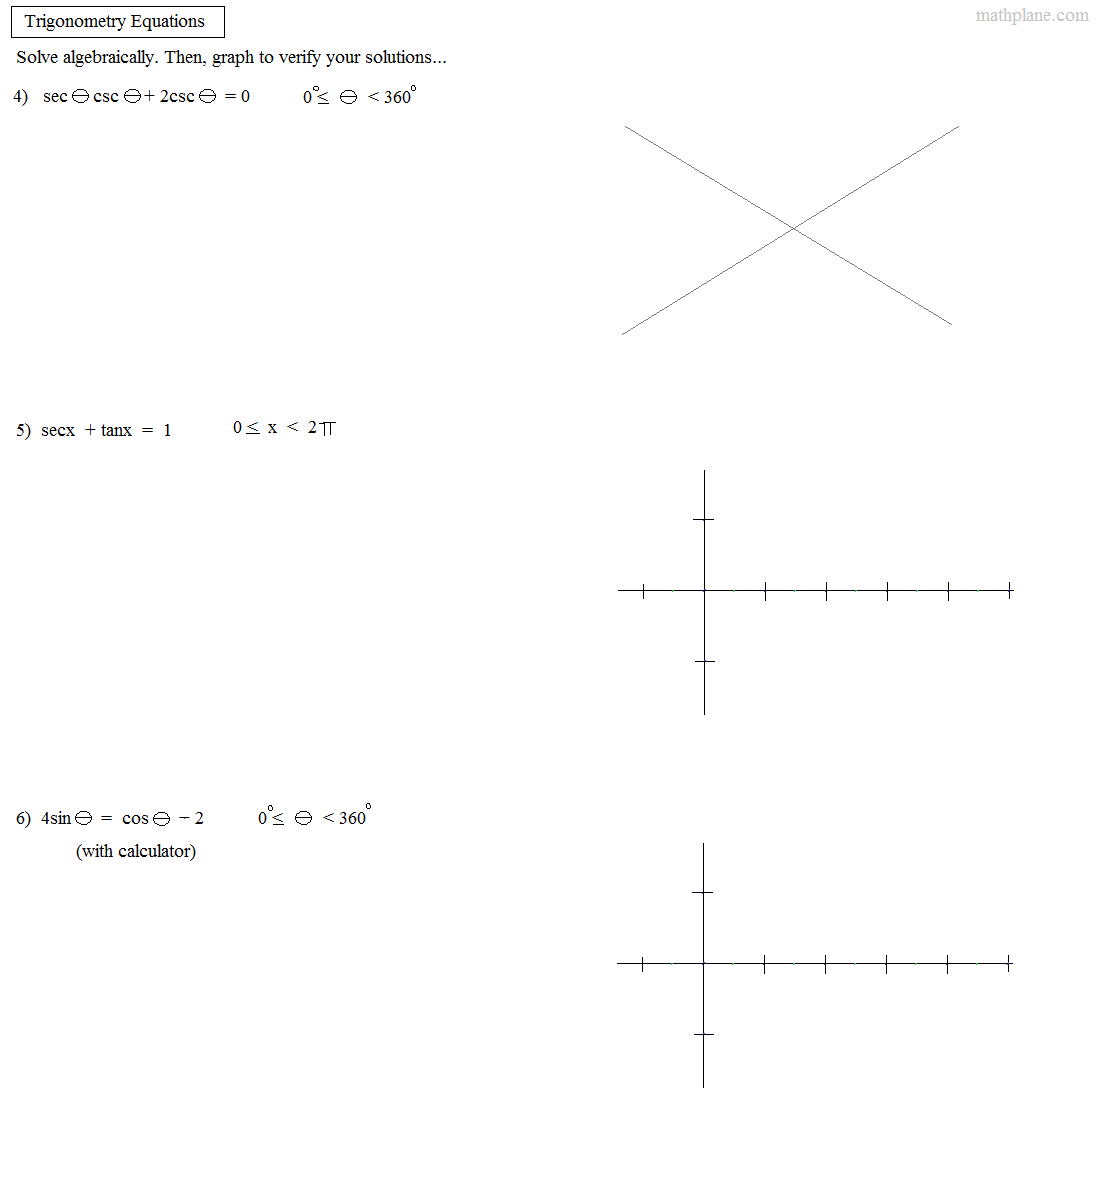 Math Plane - Trig Identities III - Solving and Graphing